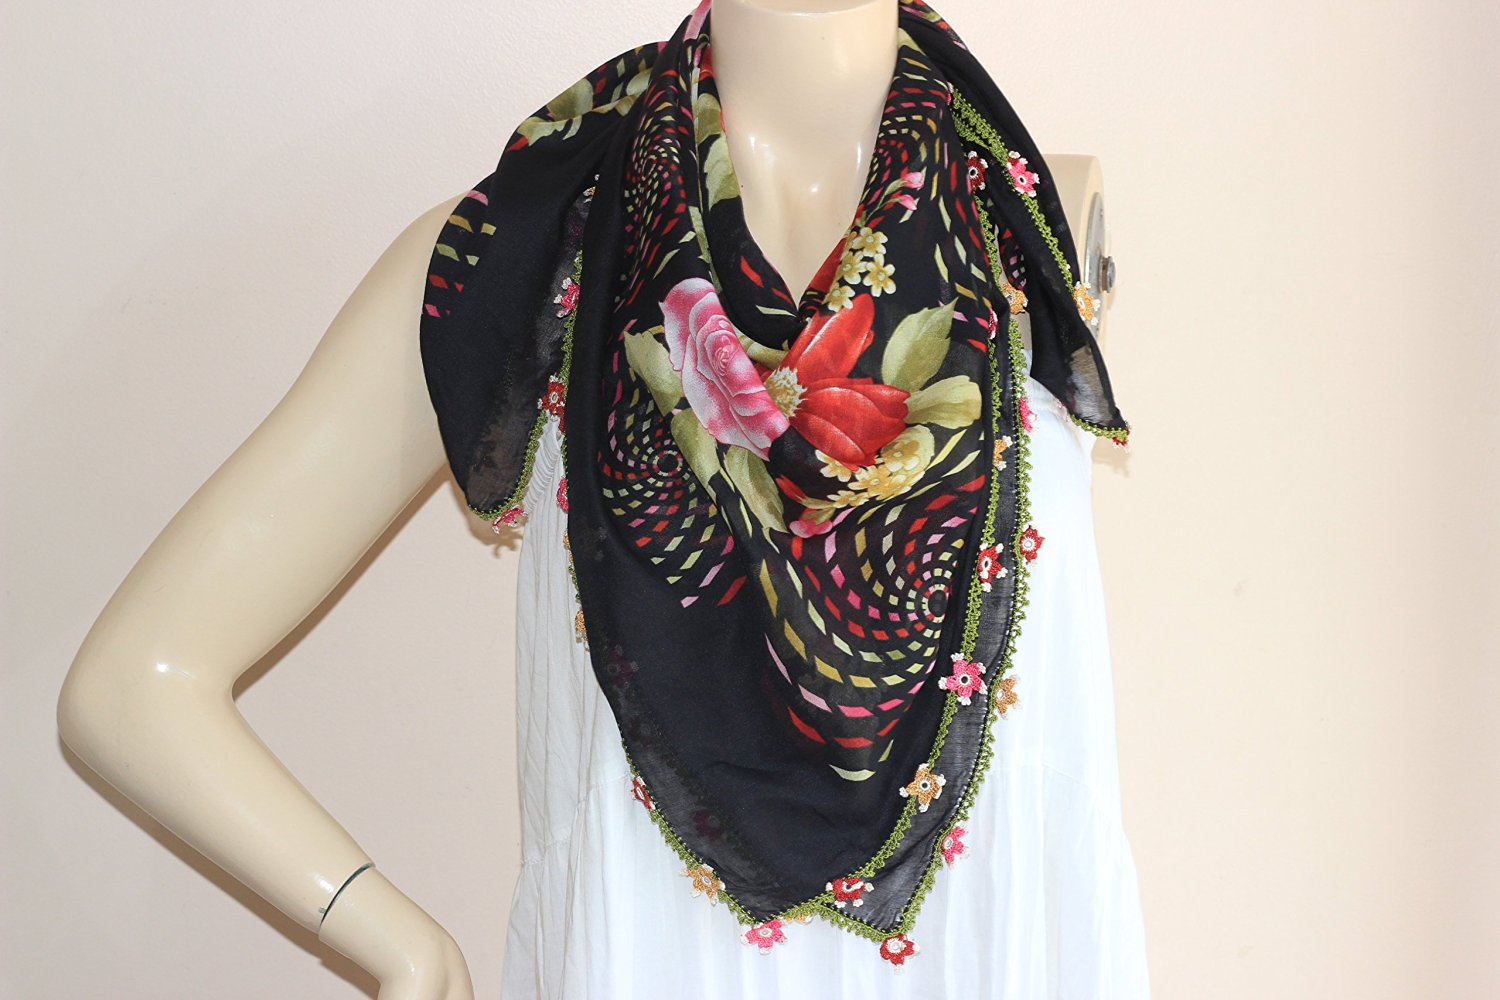 2fb250c4acde5 Get Quotations · Black Square Scarf /Turkish Anatolian Oya Scarf with  Handmade Lace Edges-red Rose Scarf